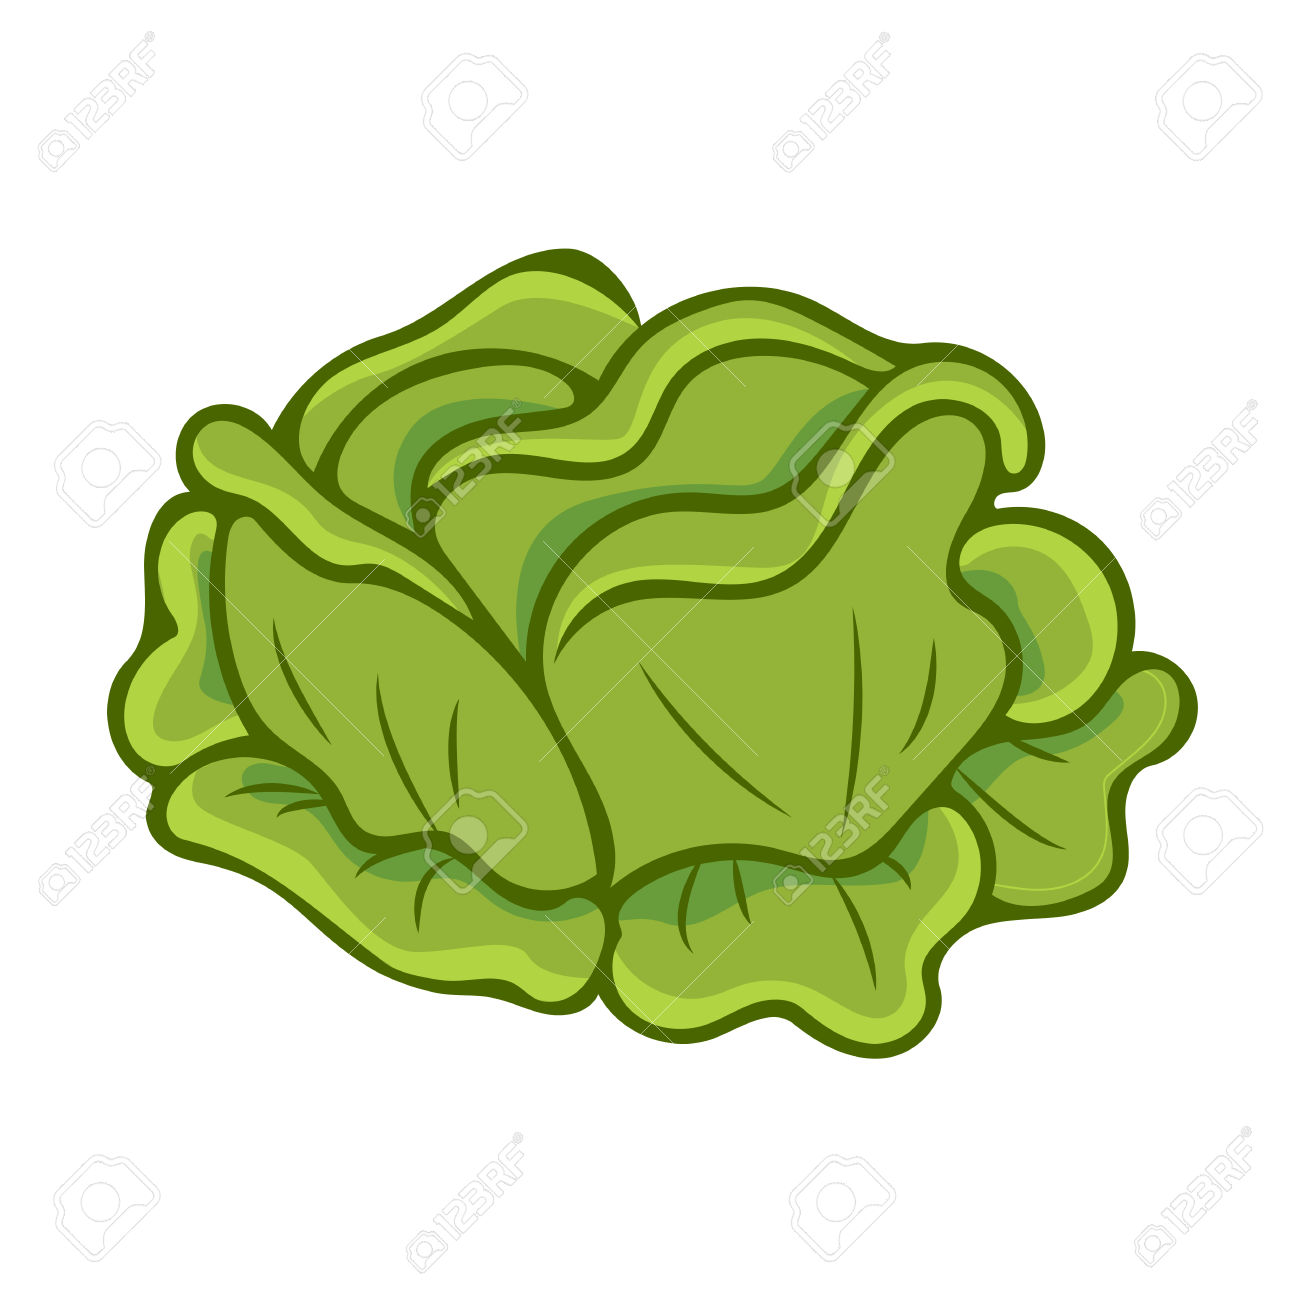 Pencil and in color. Cabbage clipart cartoon